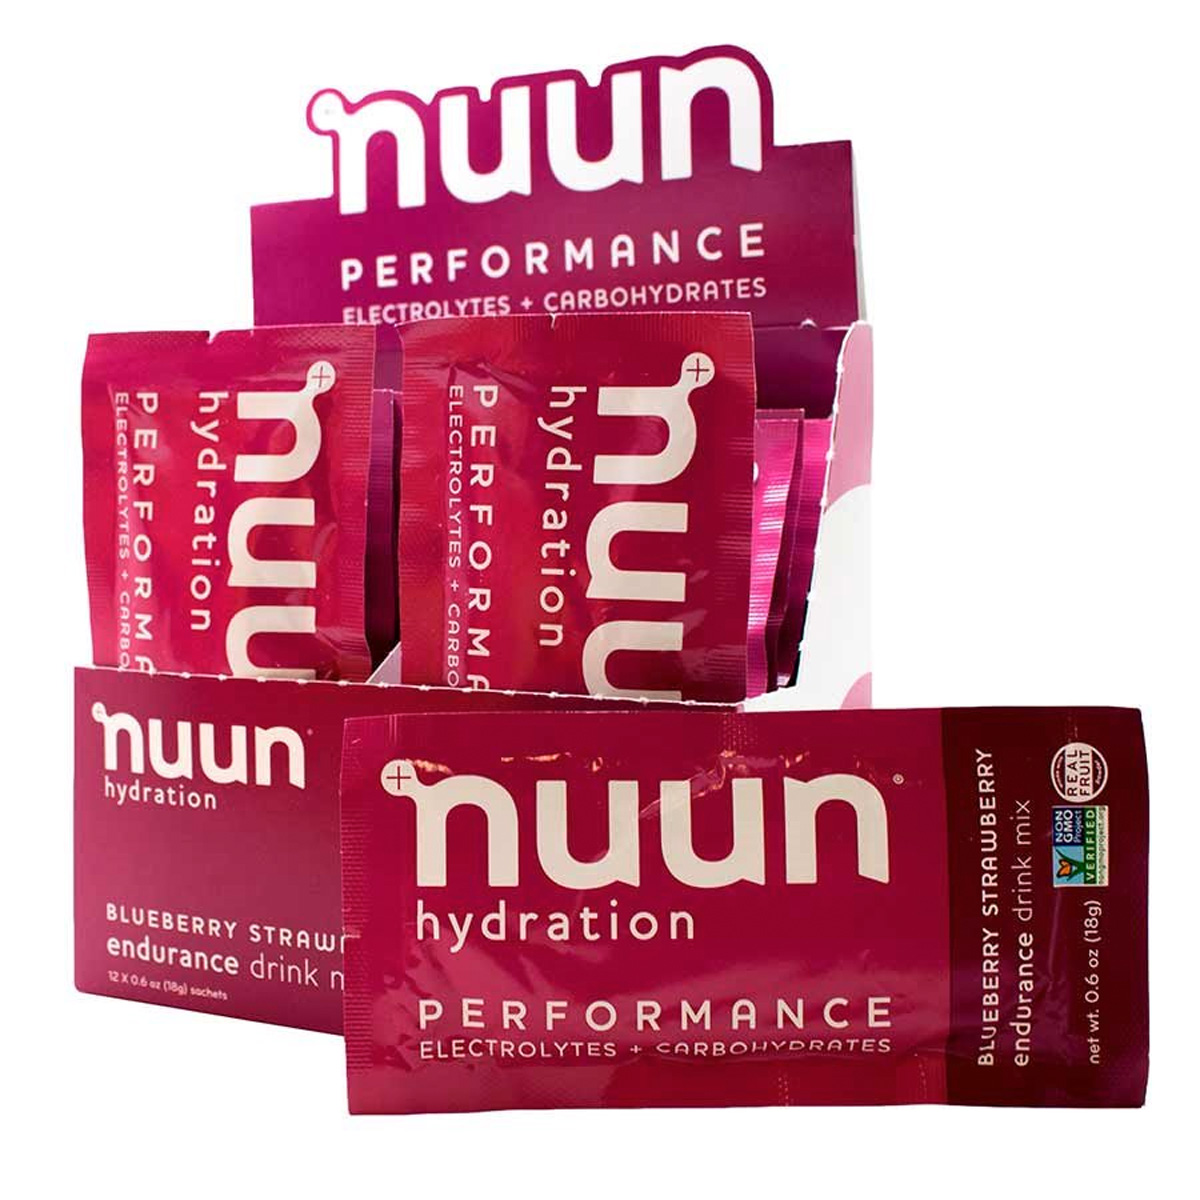 Nuun Performance Hydration: Blueberry Strawberry, Box of 12